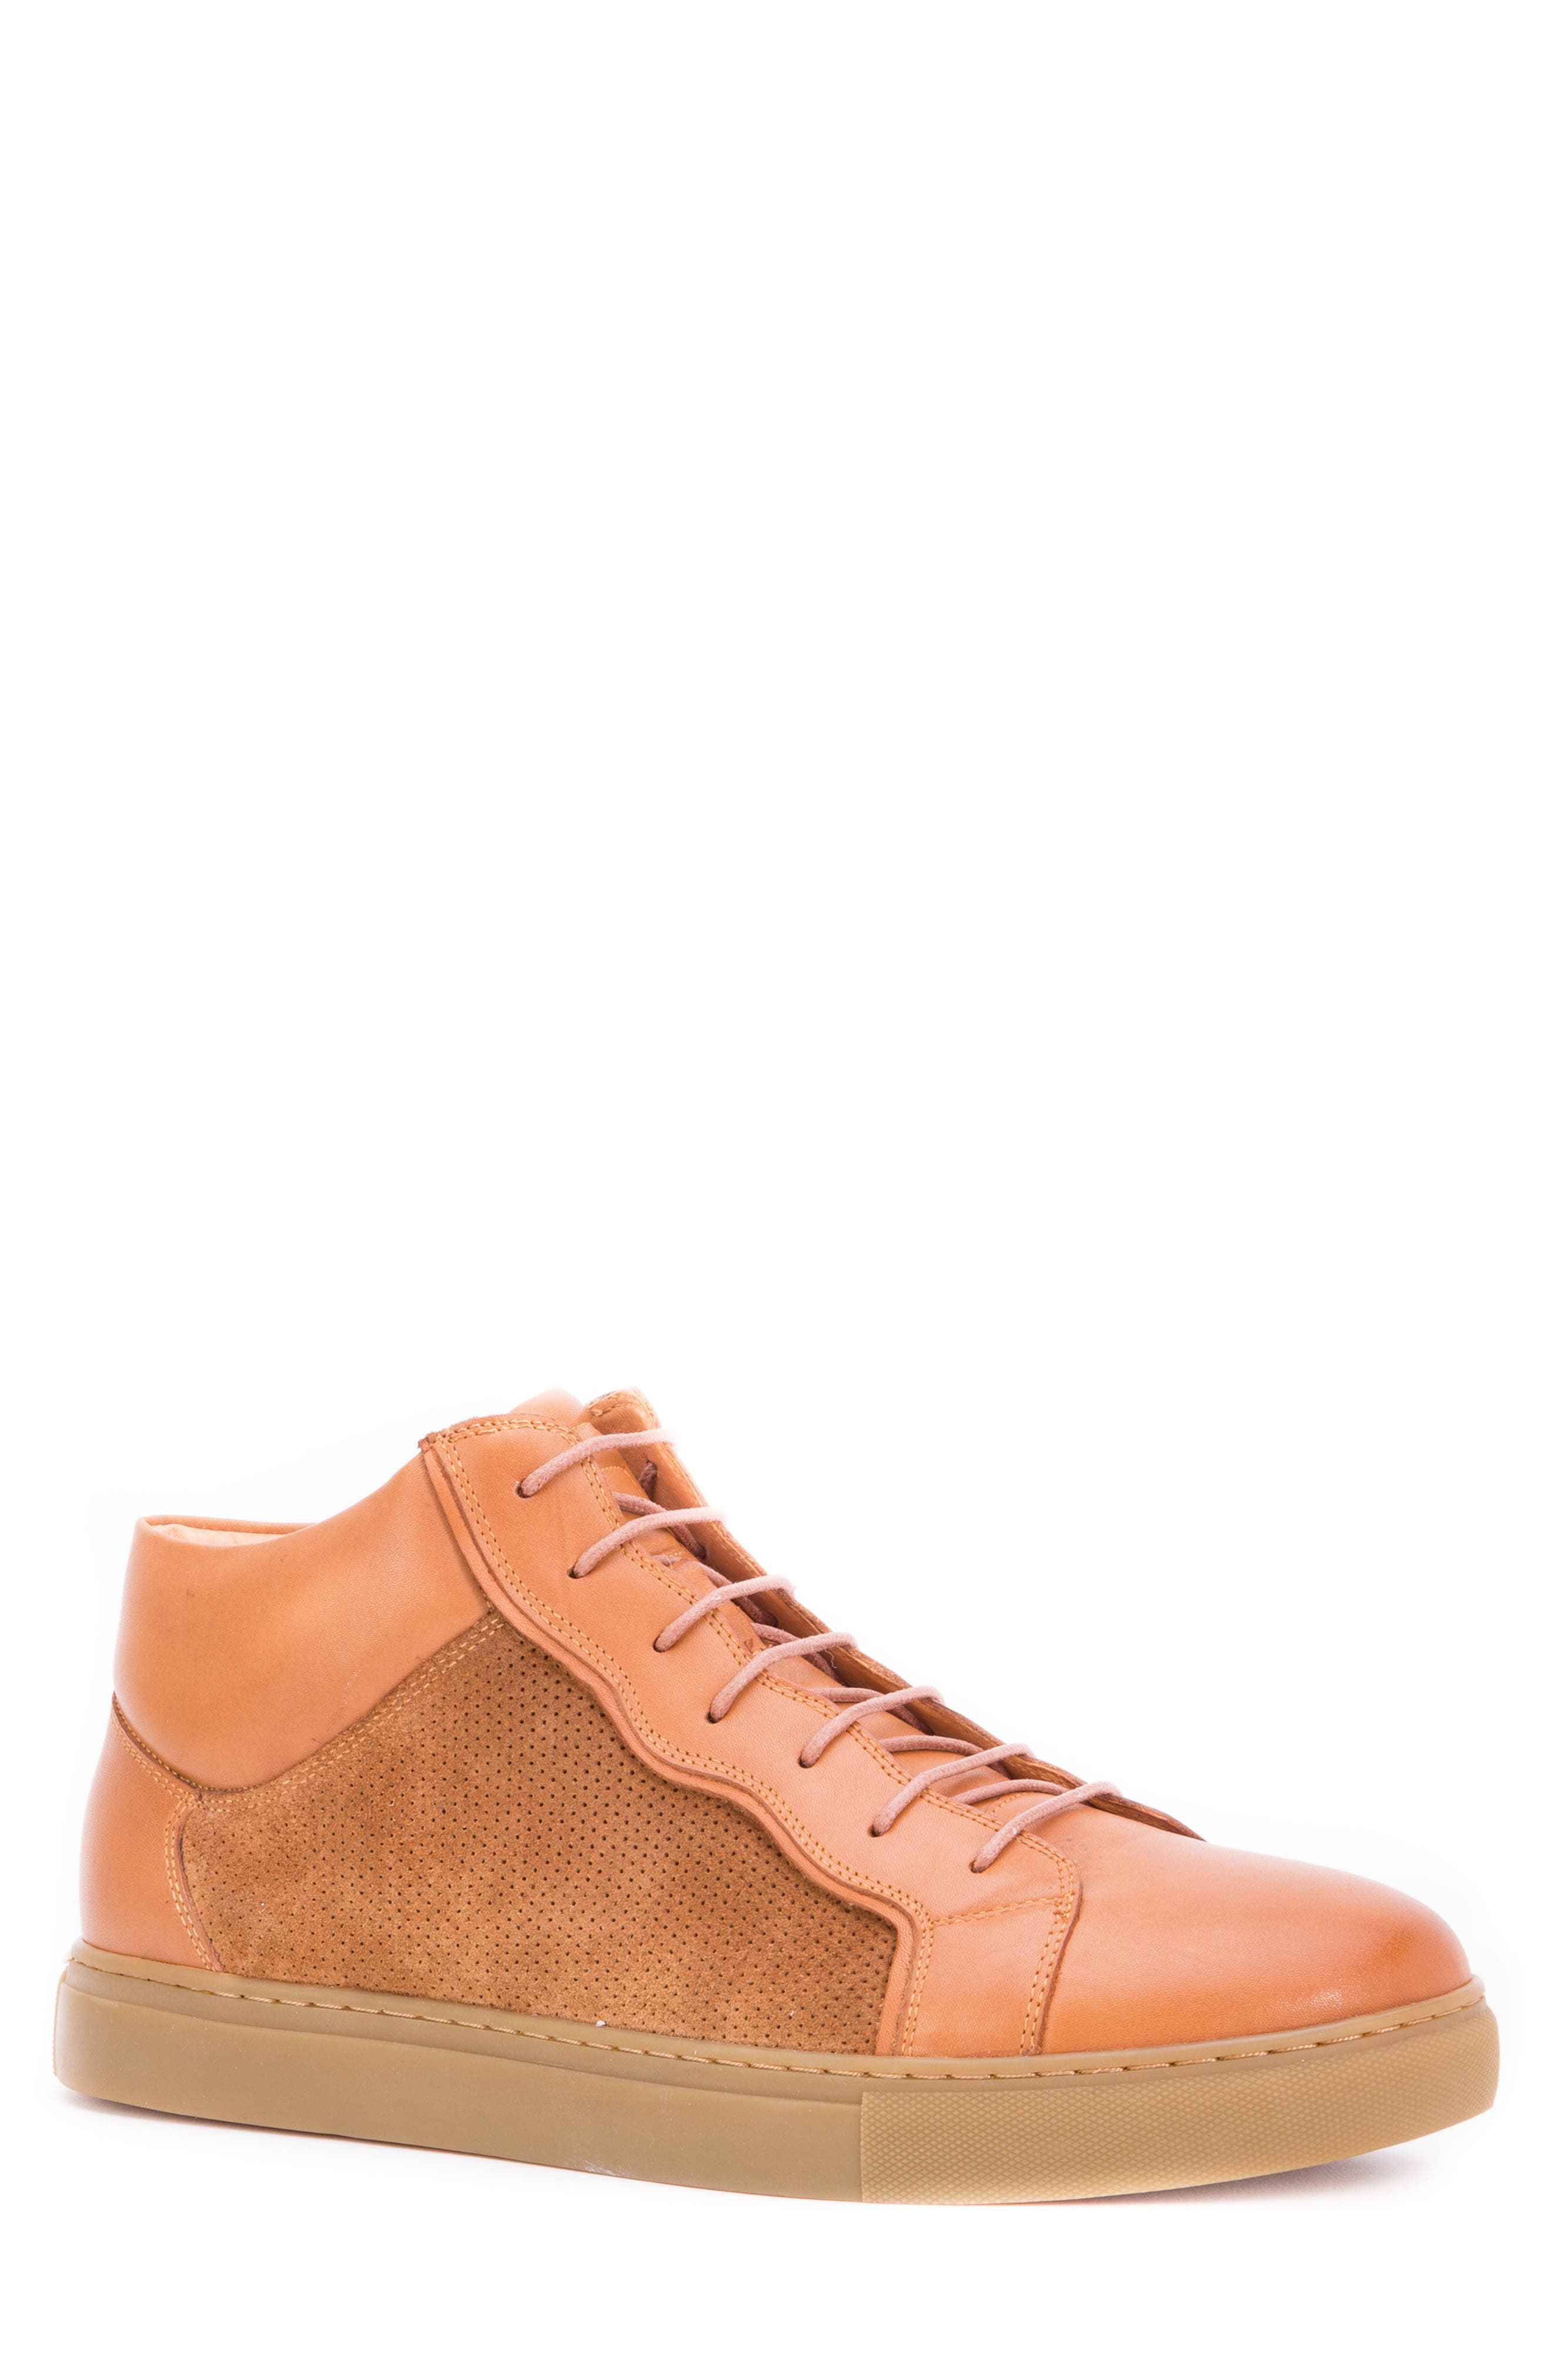 Twist Perforated High Top Sneaker,                             Main thumbnail 1, color,                             Cognac Leather/ Suede